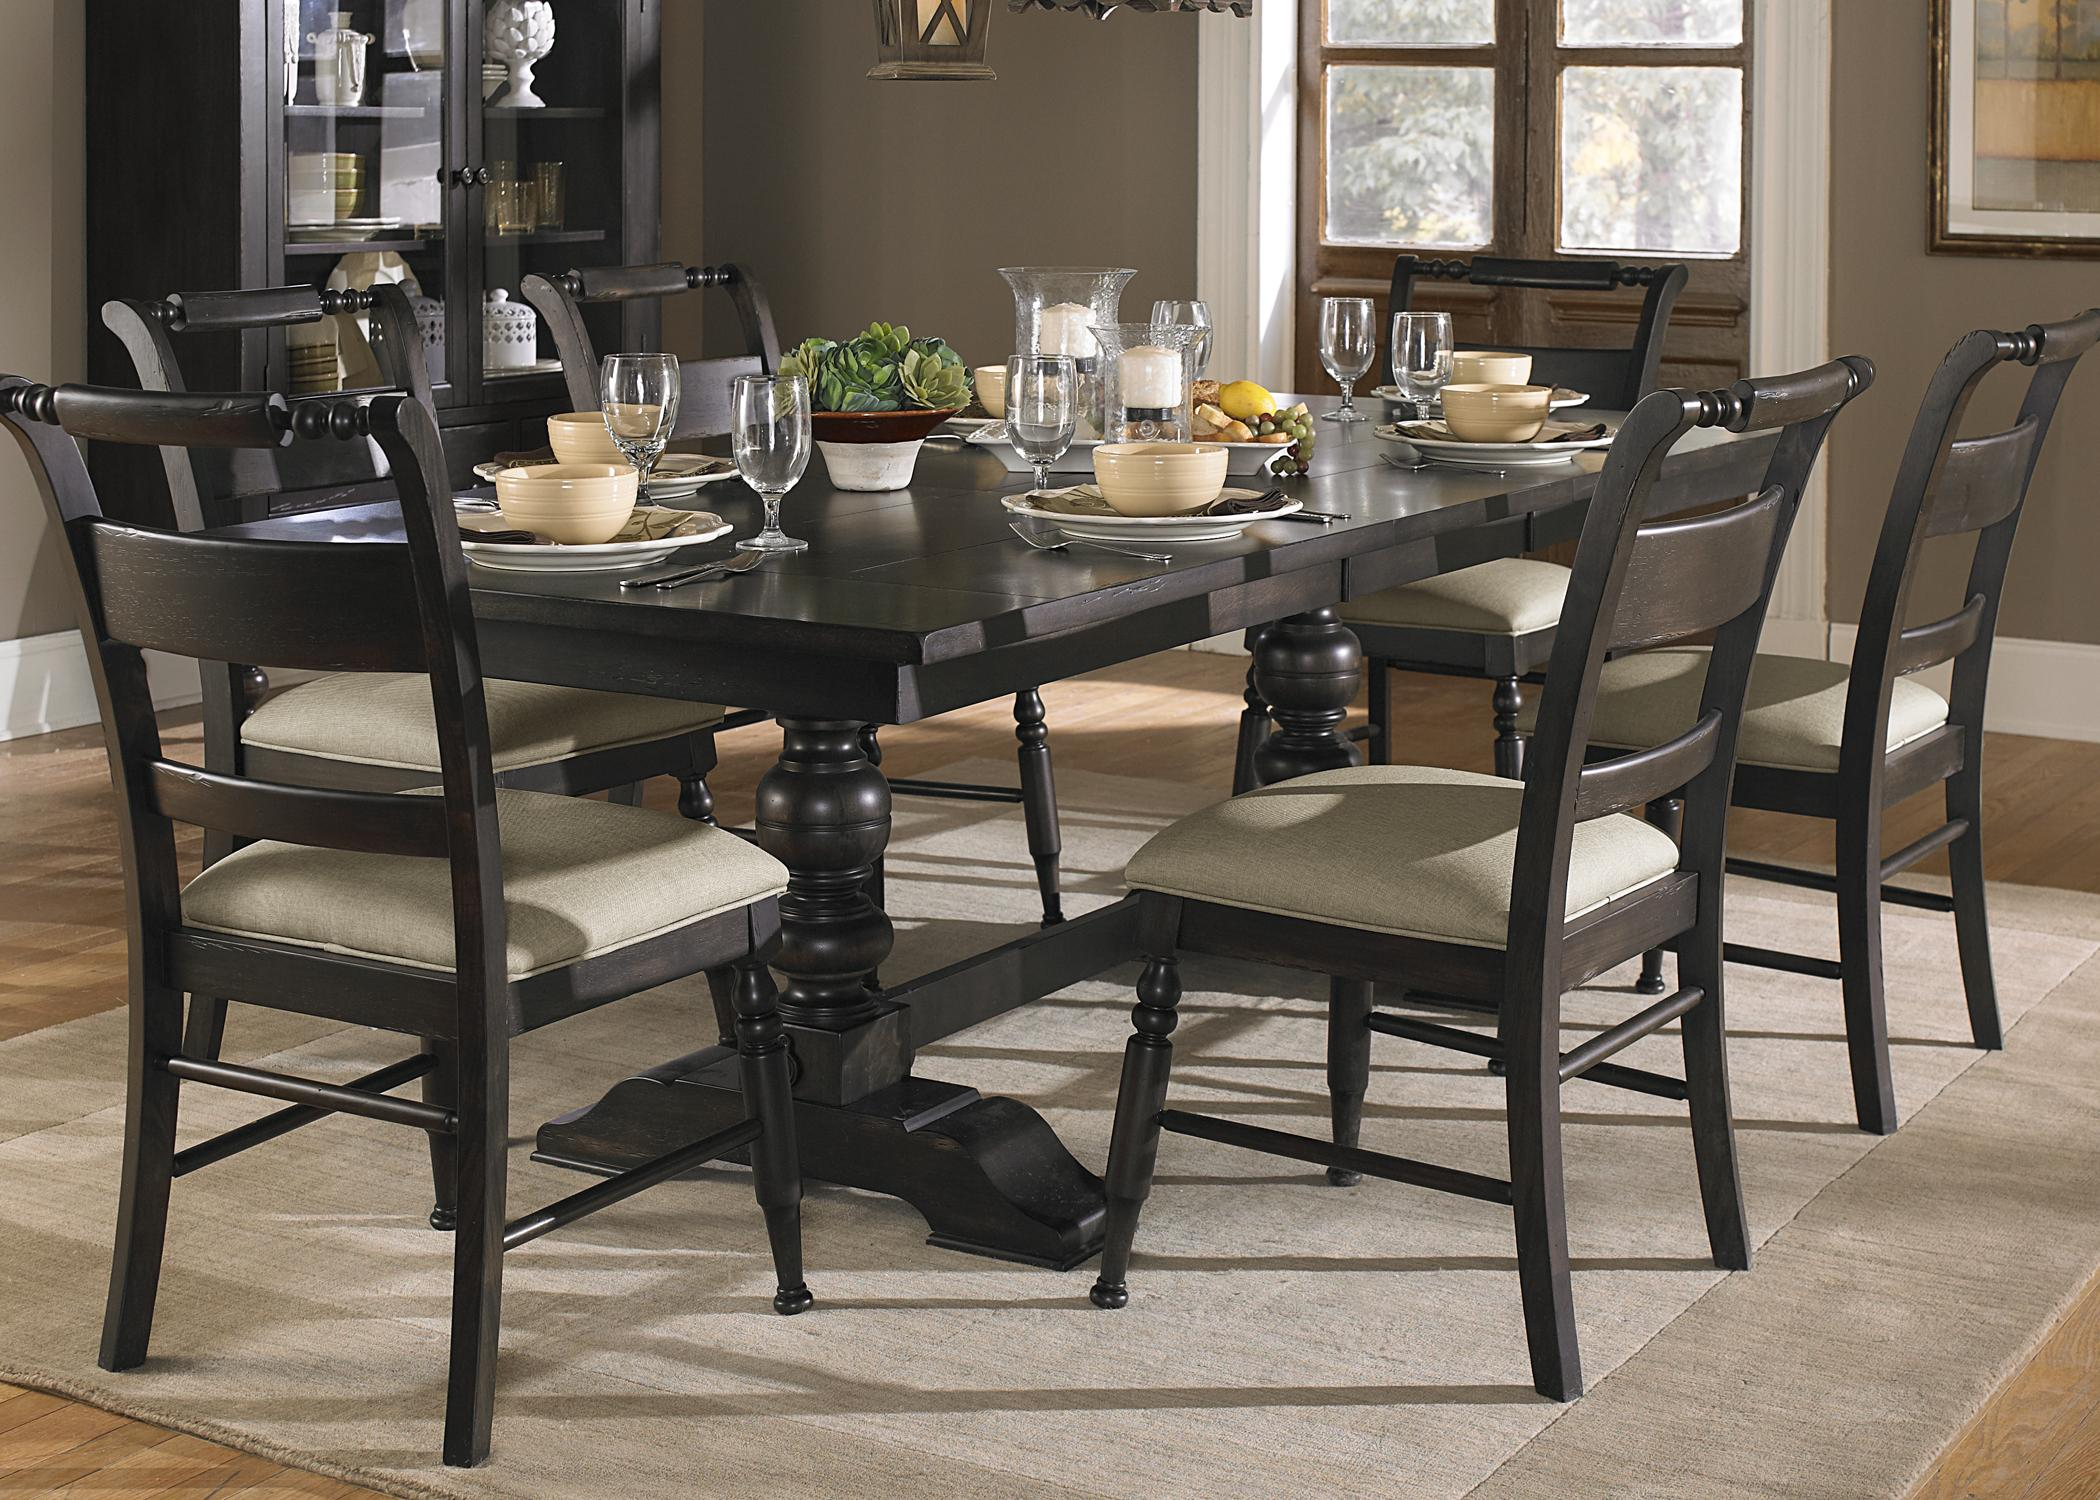 7 piece trestle dining room table set by liberty furniture wolf and gardiner wolf furniture - Black dining room tables ...